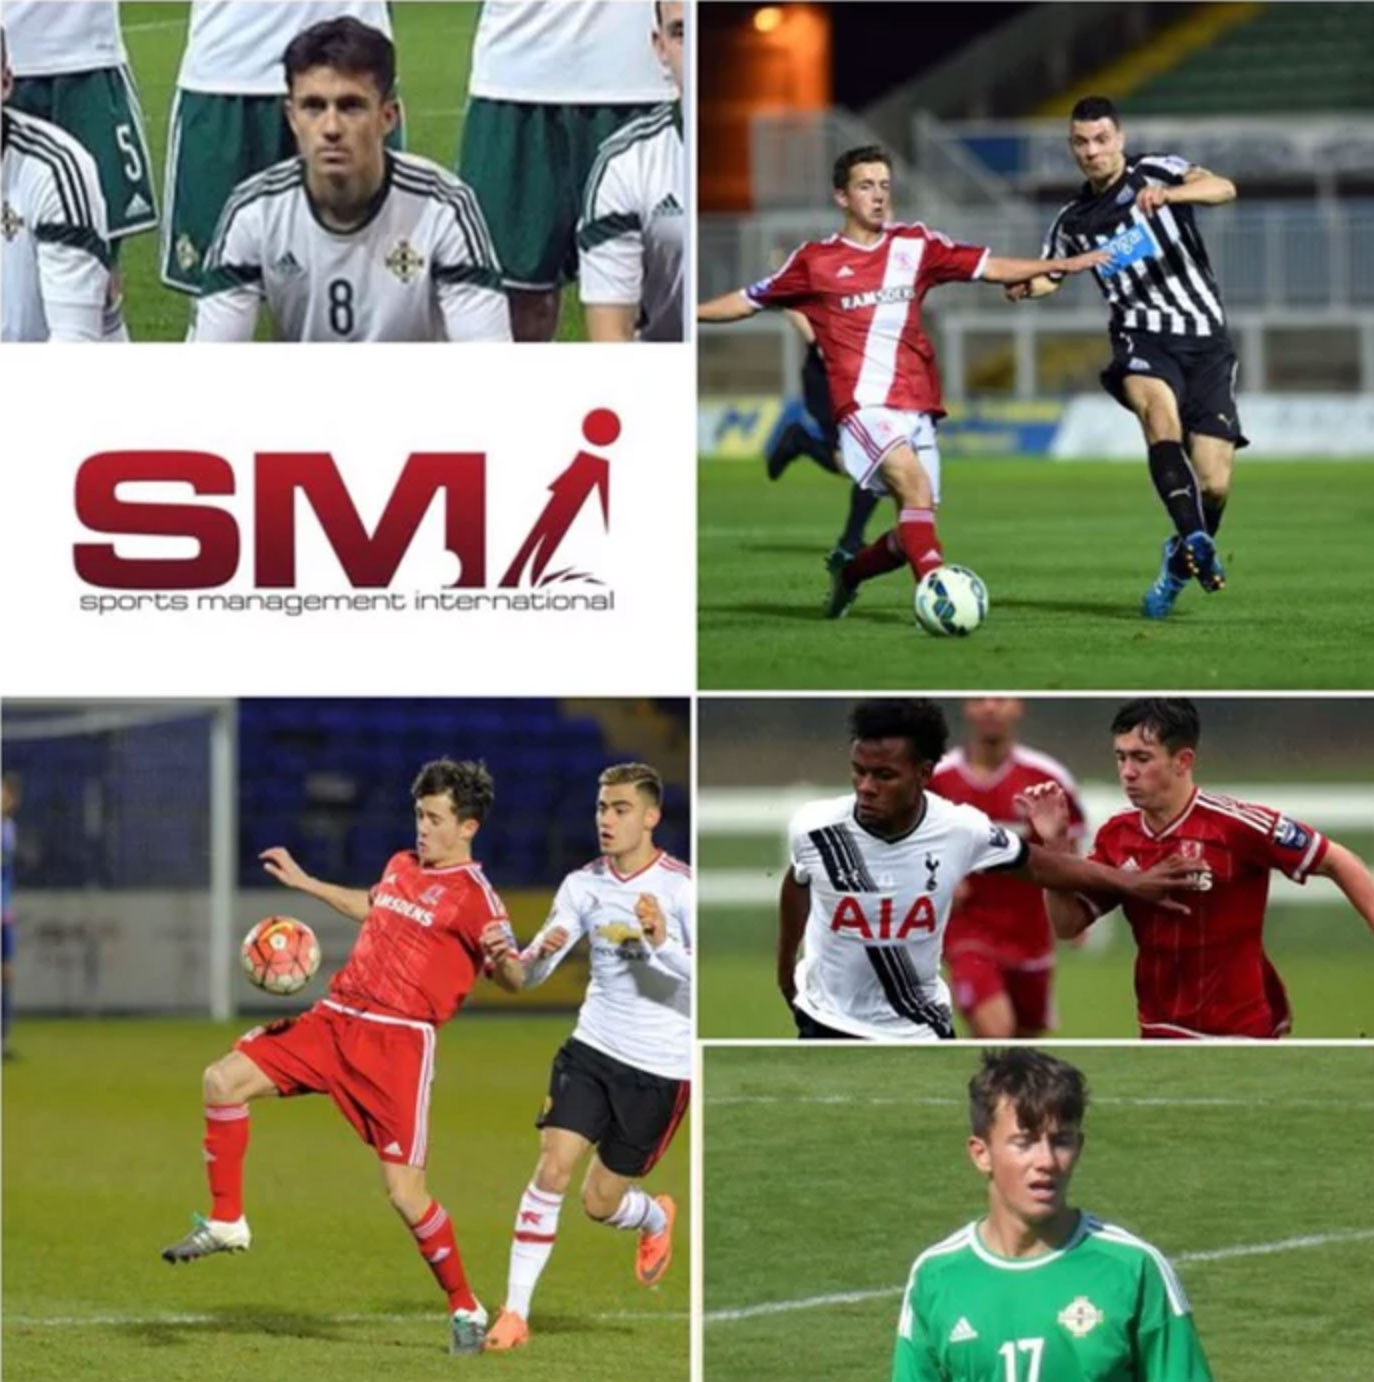 SMI sign Lewis Maloney of Middlesbrough FC